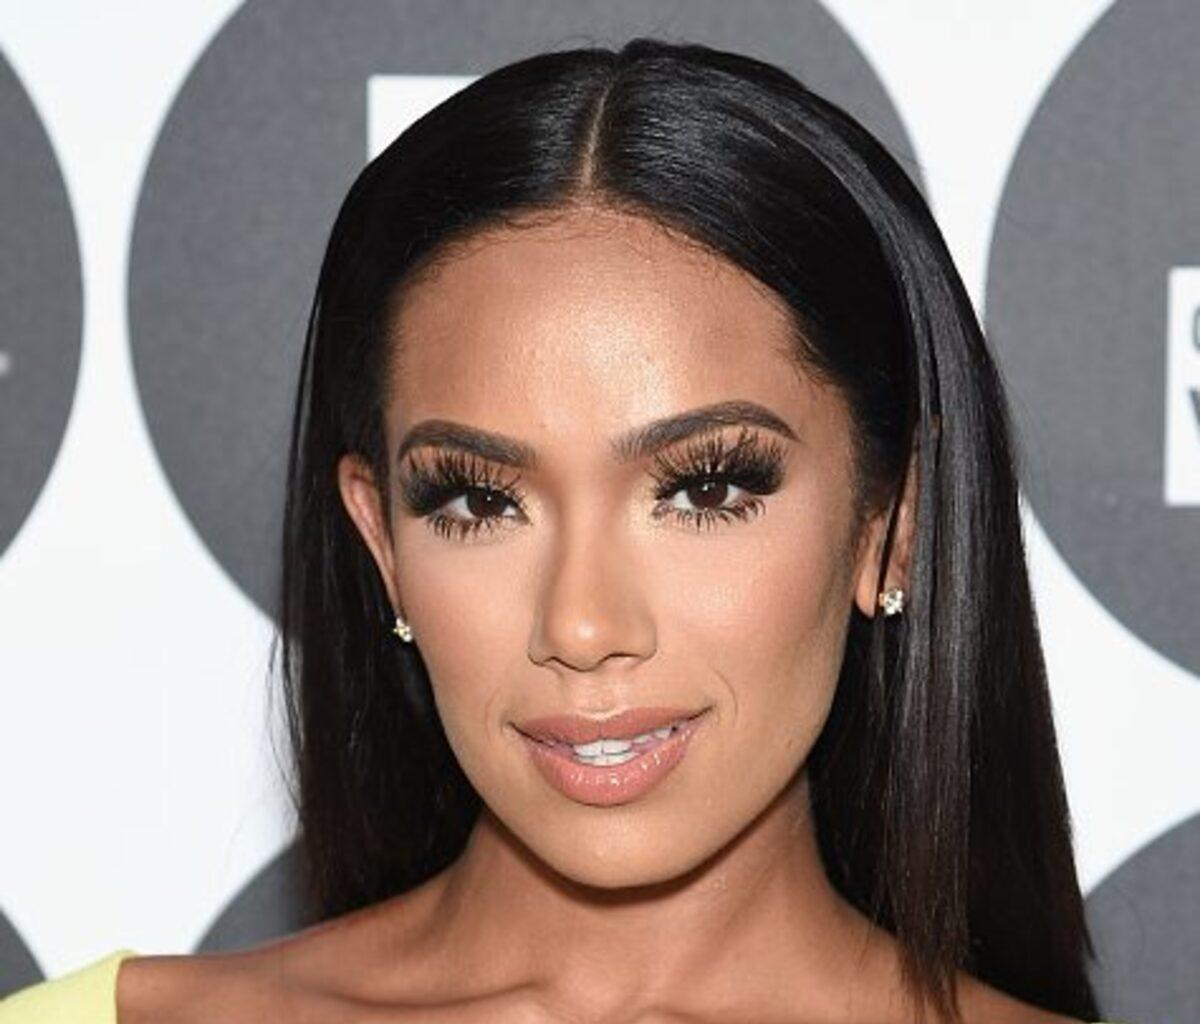 Erica Mena Surprises Fans With Exclusive Content On Her OnlyFans Account